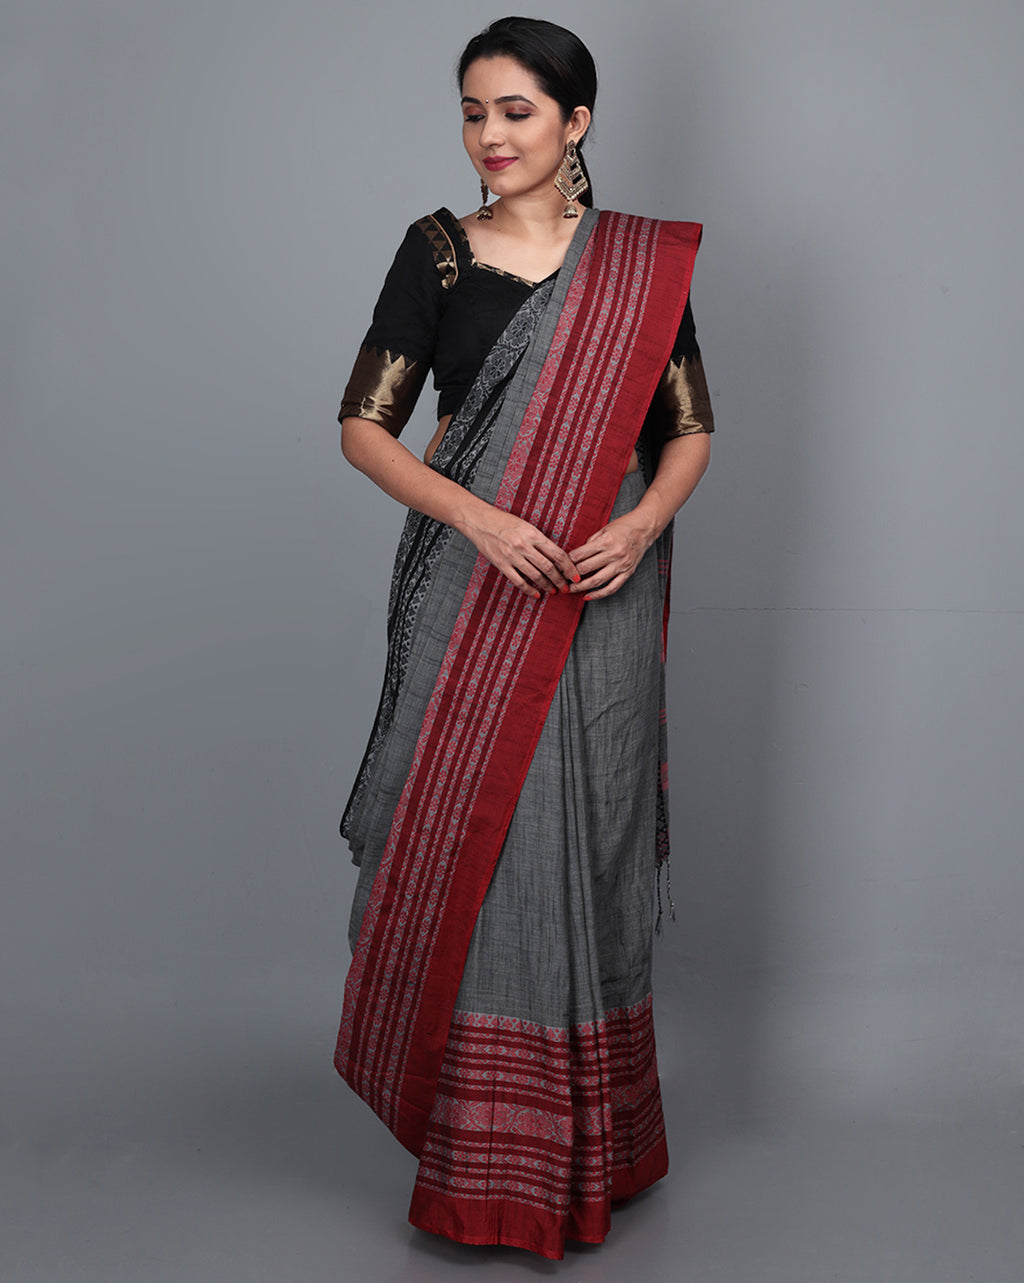 Phulia Cotton Saree with Thick and Thin Floral Border - Charcoal Grey/Red & Black